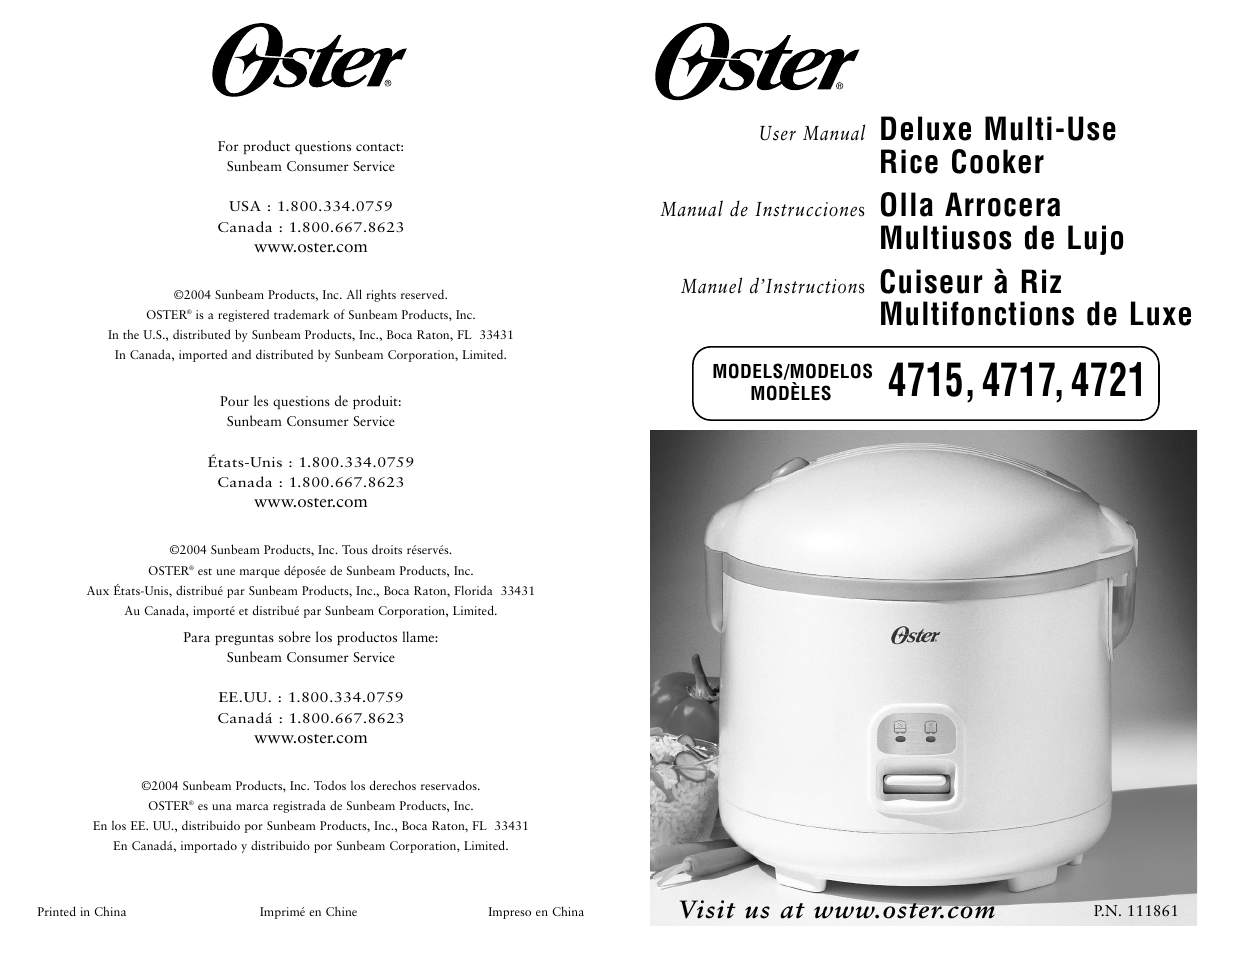 oster 4717 user manual 4 pages also for 4715 4721 rh manualsdir com oster rice cooker model 4715 parts oster rice cooker model 4715 manual